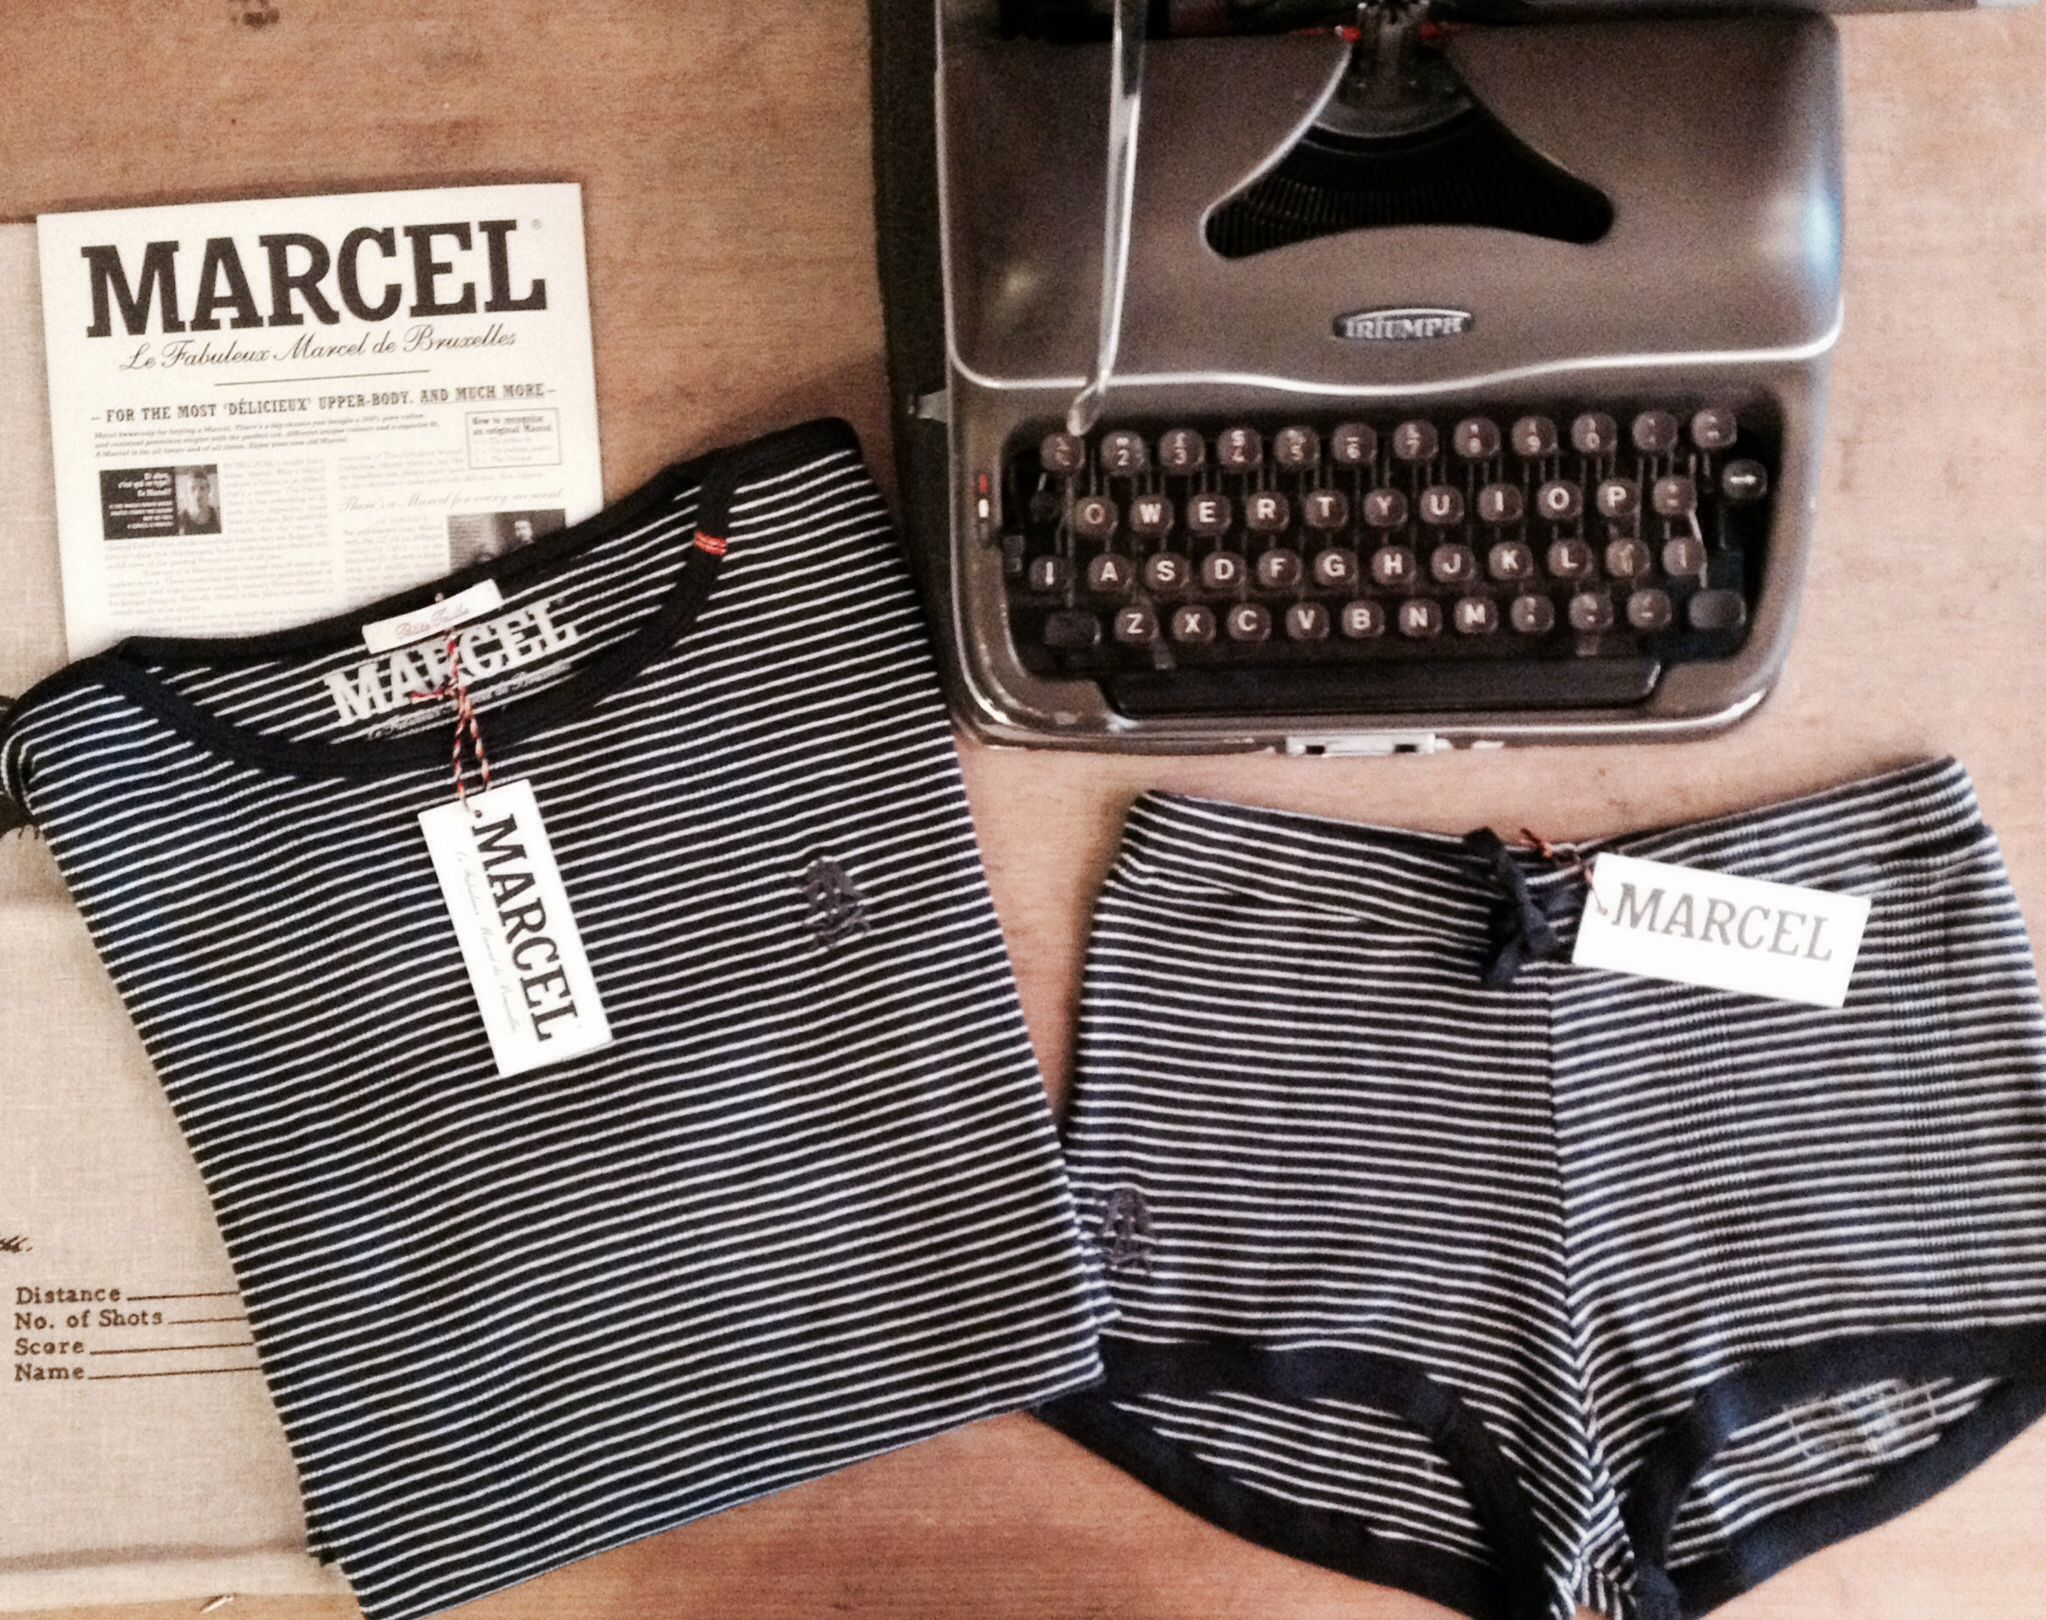 ss14 collection in the house !! #fier! #lefabuleuxmarcel